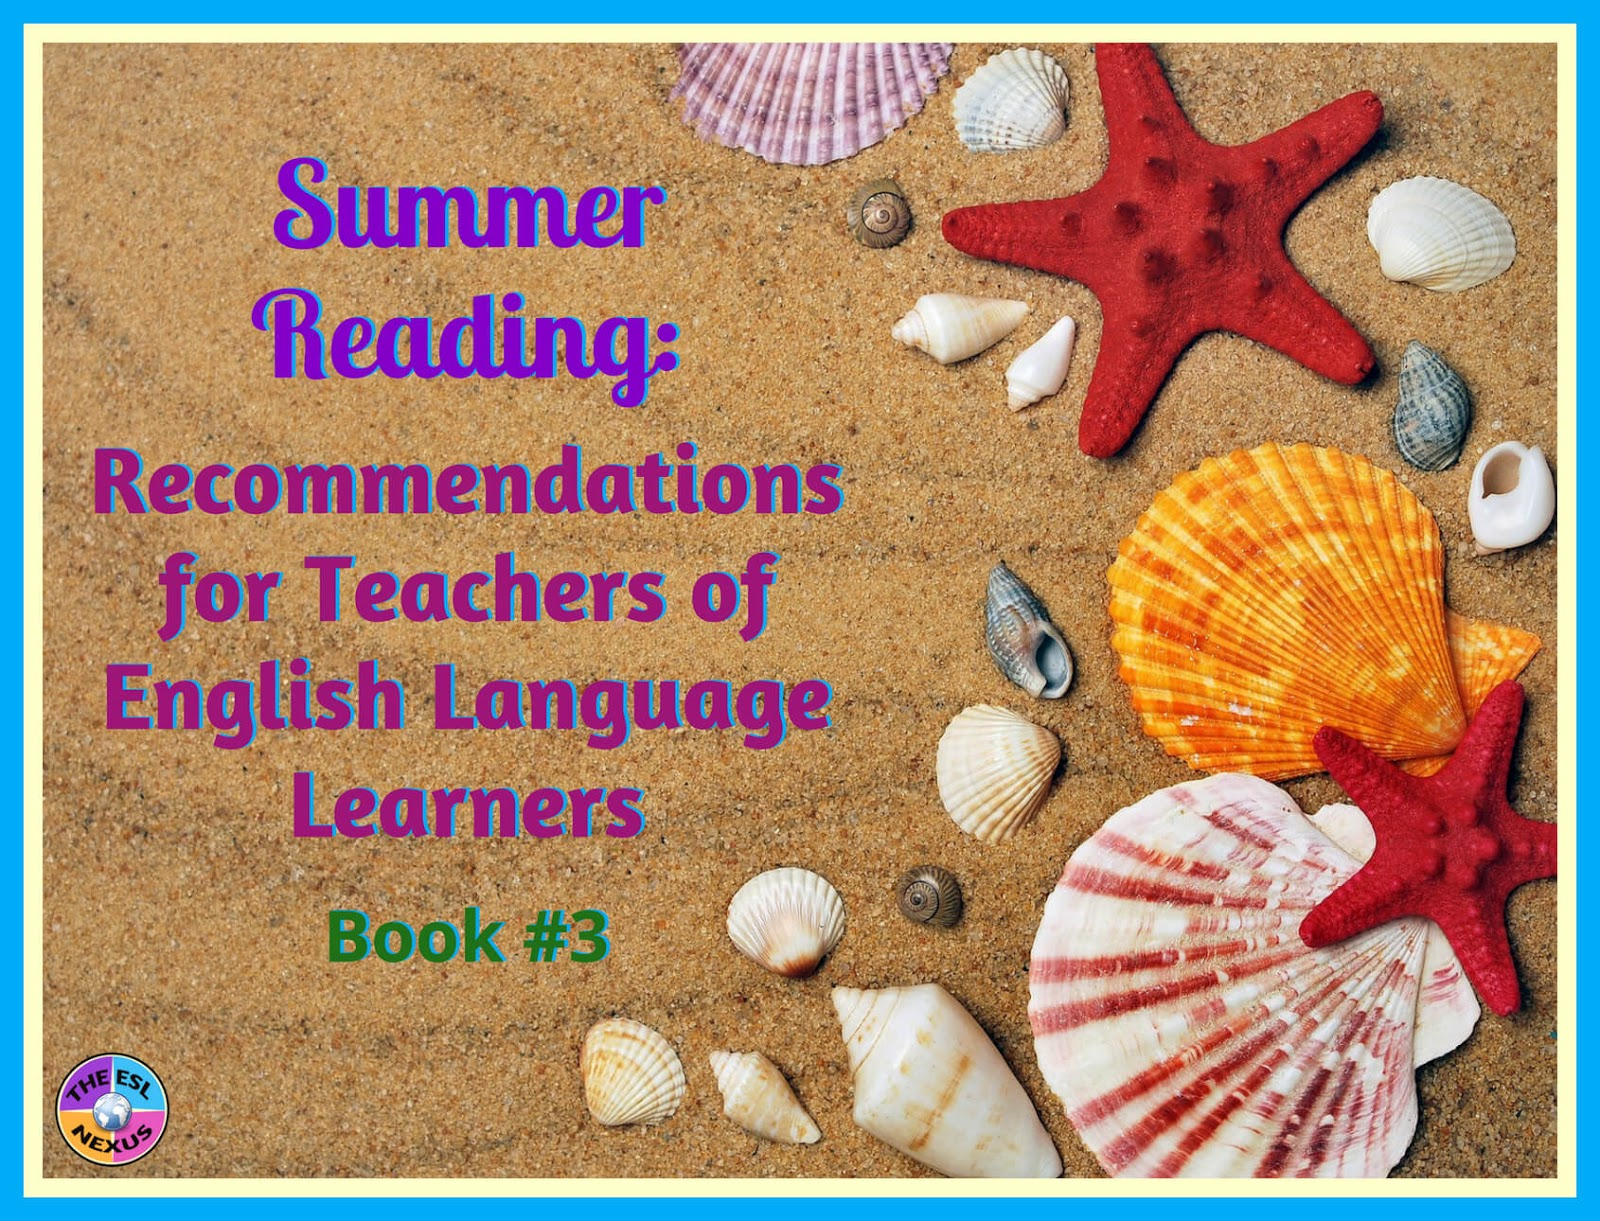 Part 3 in a series of book recommendations for teachers of English Language Learners | The ESL Nexus